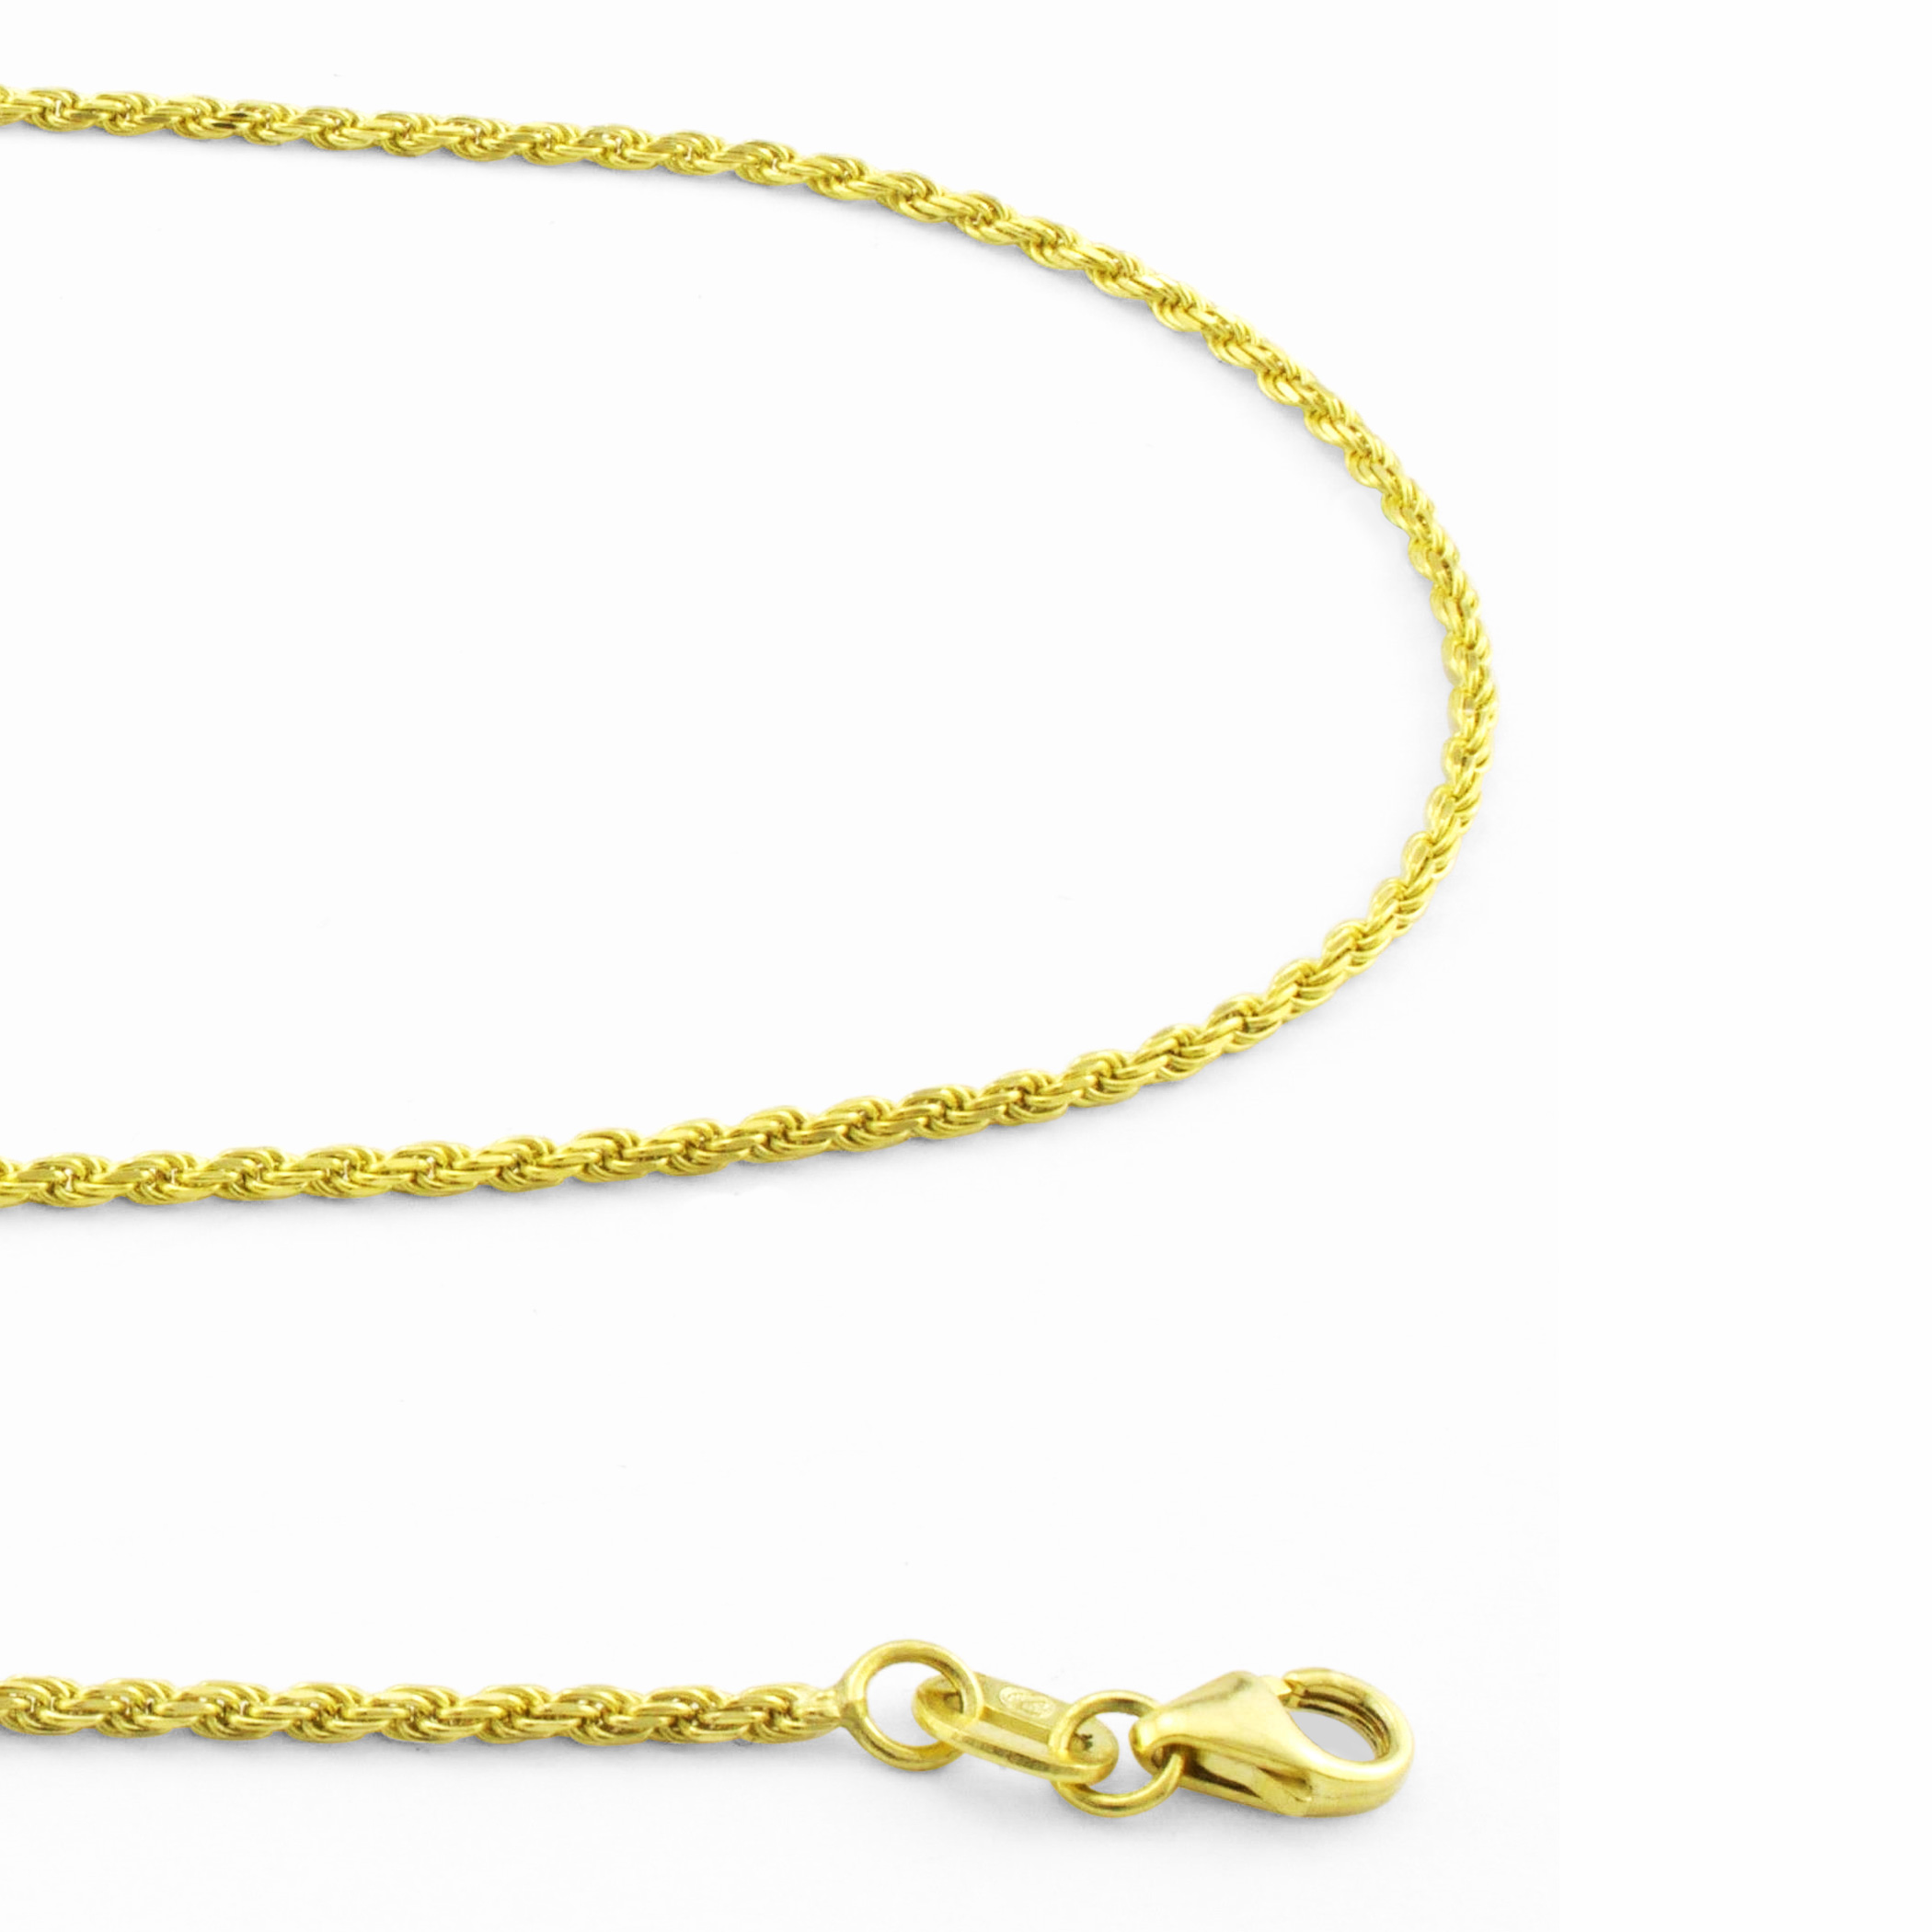 14K-Yellow-Gold-Solid-1-8mm-Diamond-Cut-Rope-Link-Chain-Pendant-Necklace-16-034-30-034 thumbnail 19